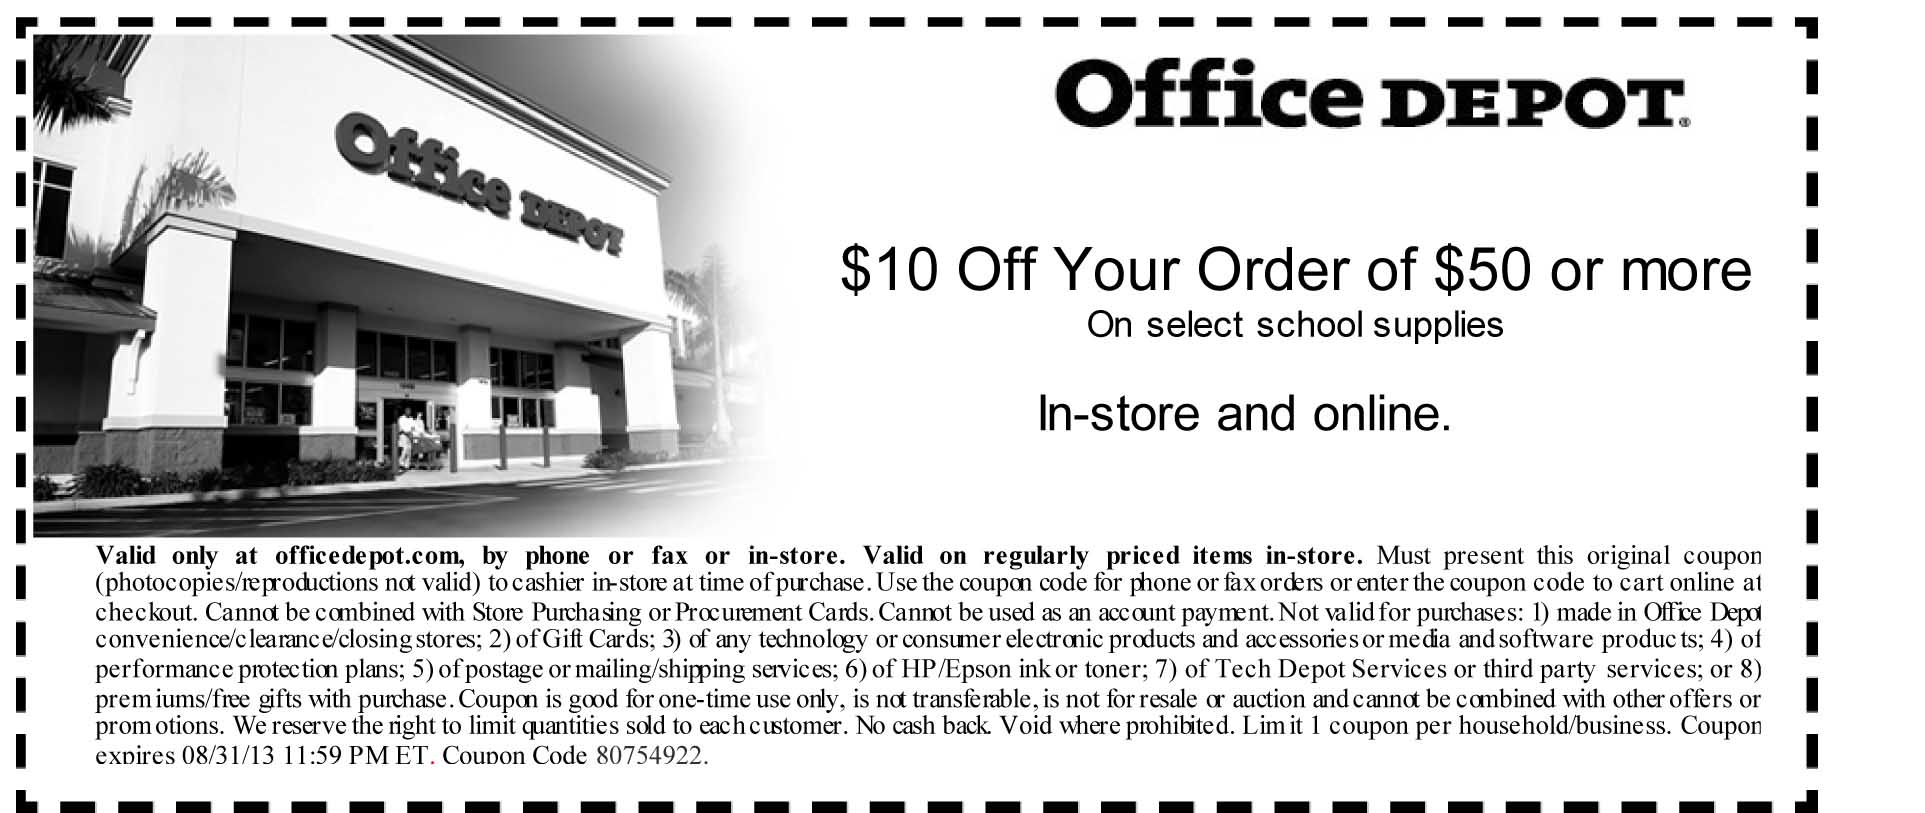 Office Depot Coupon off school supplies